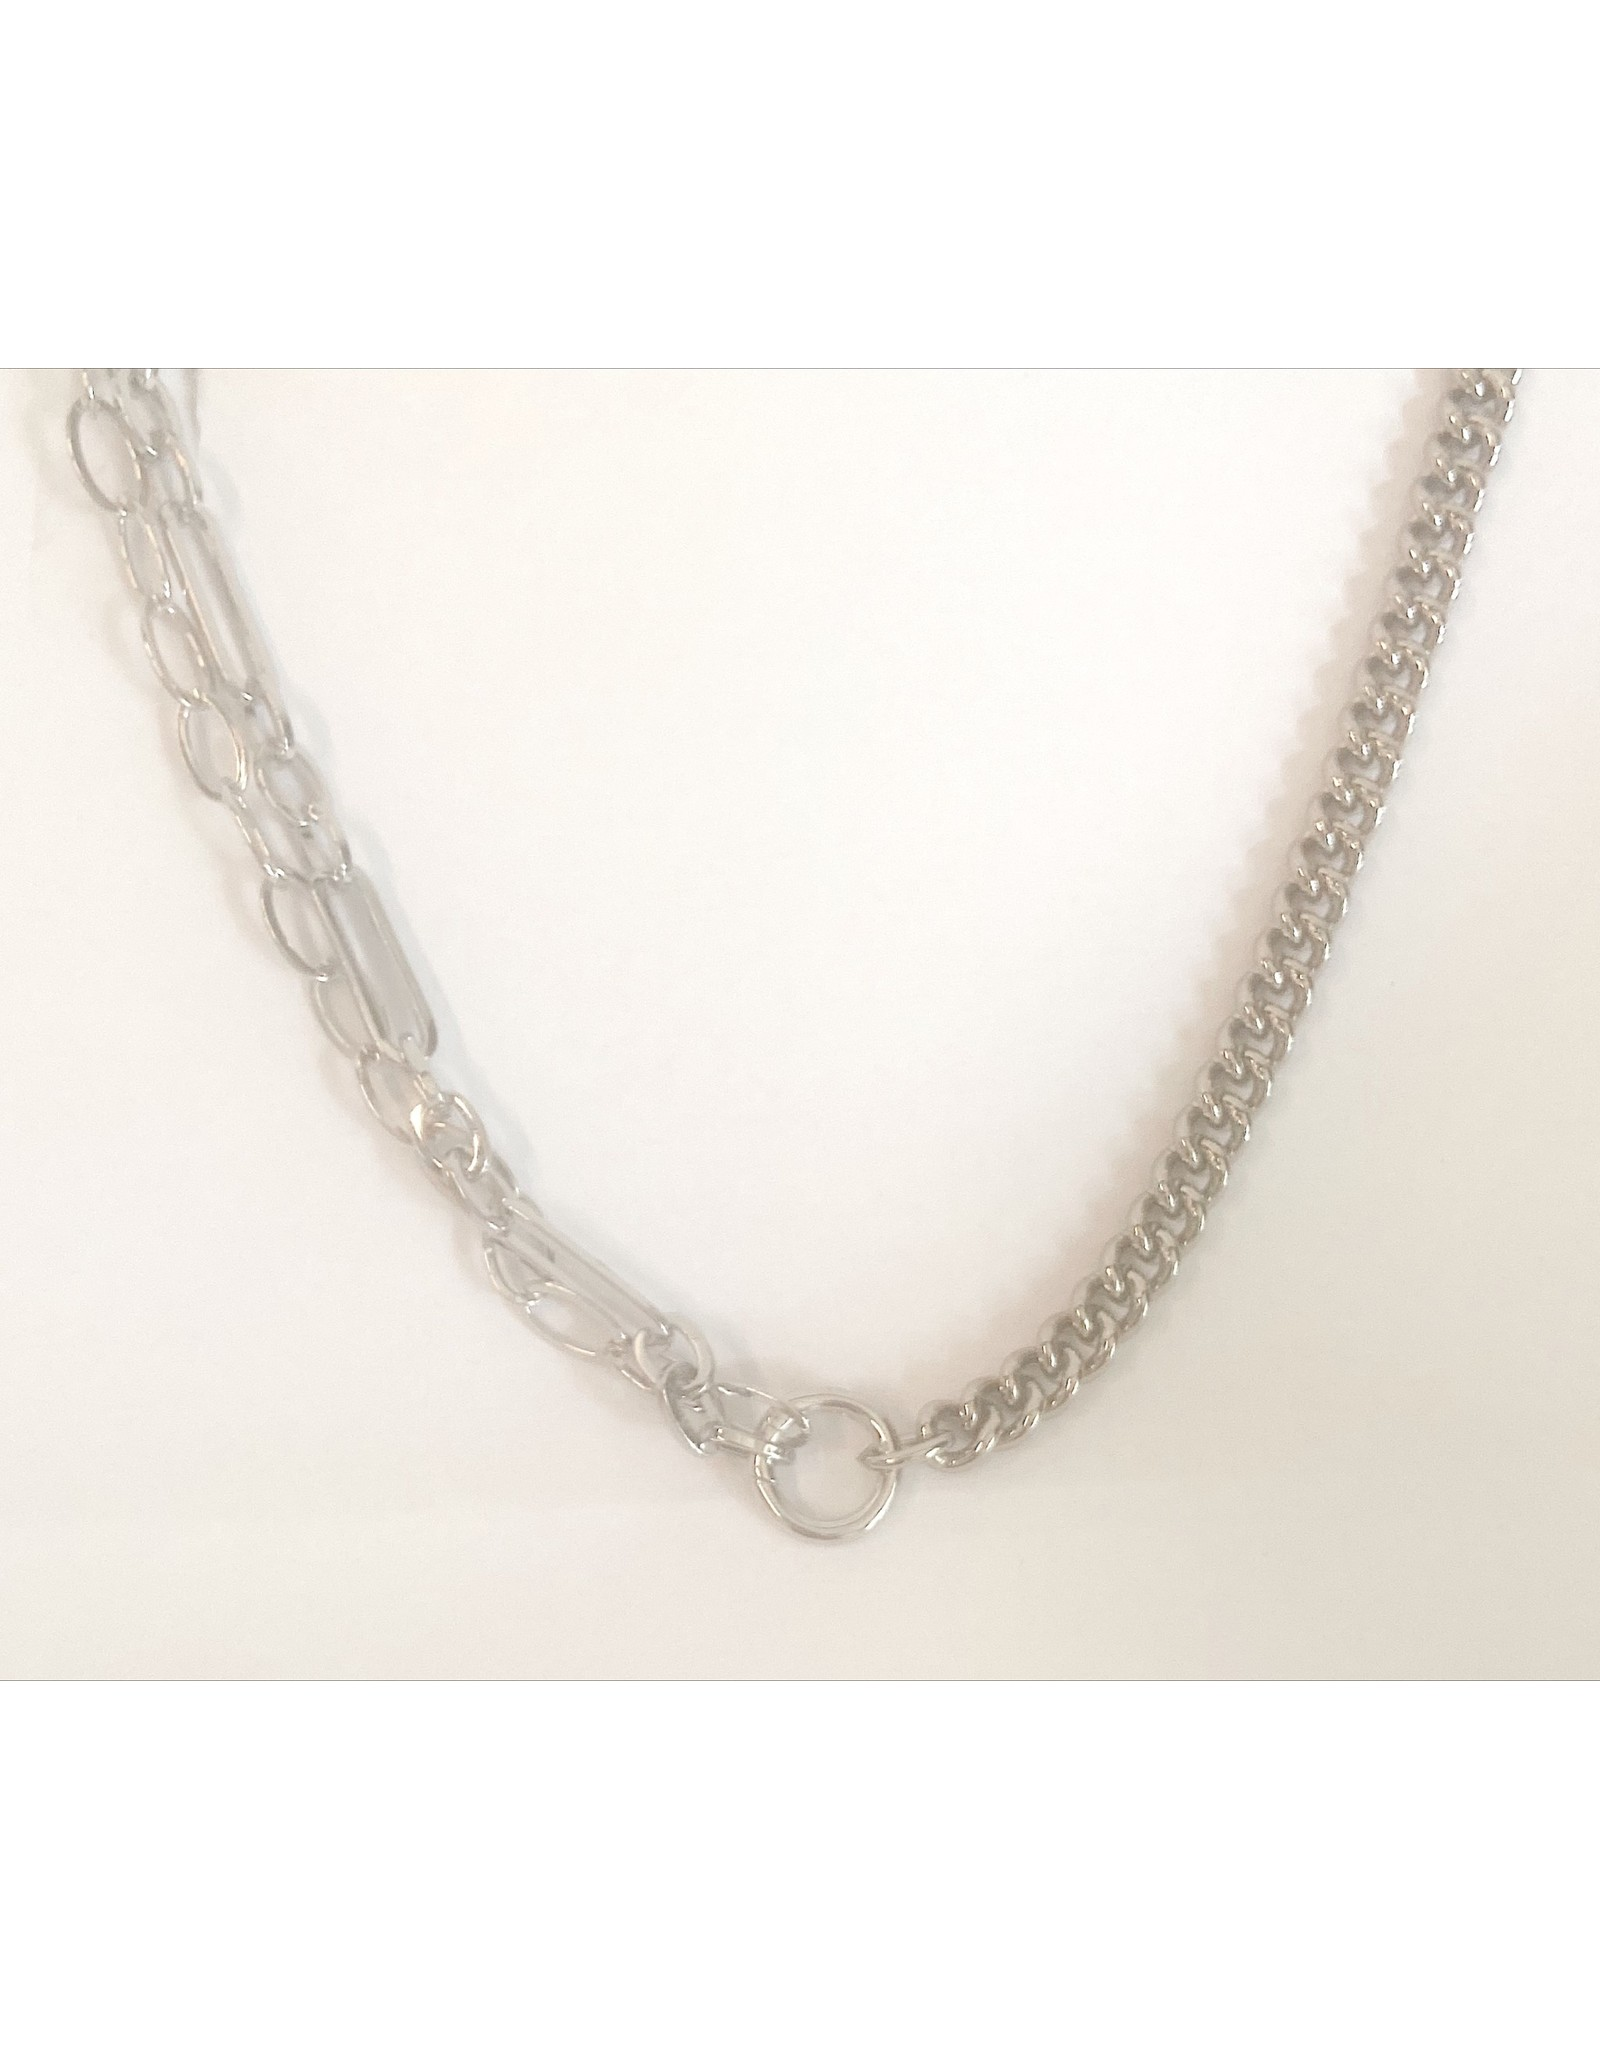 ANUJA TOLIA PAC NECKLACE